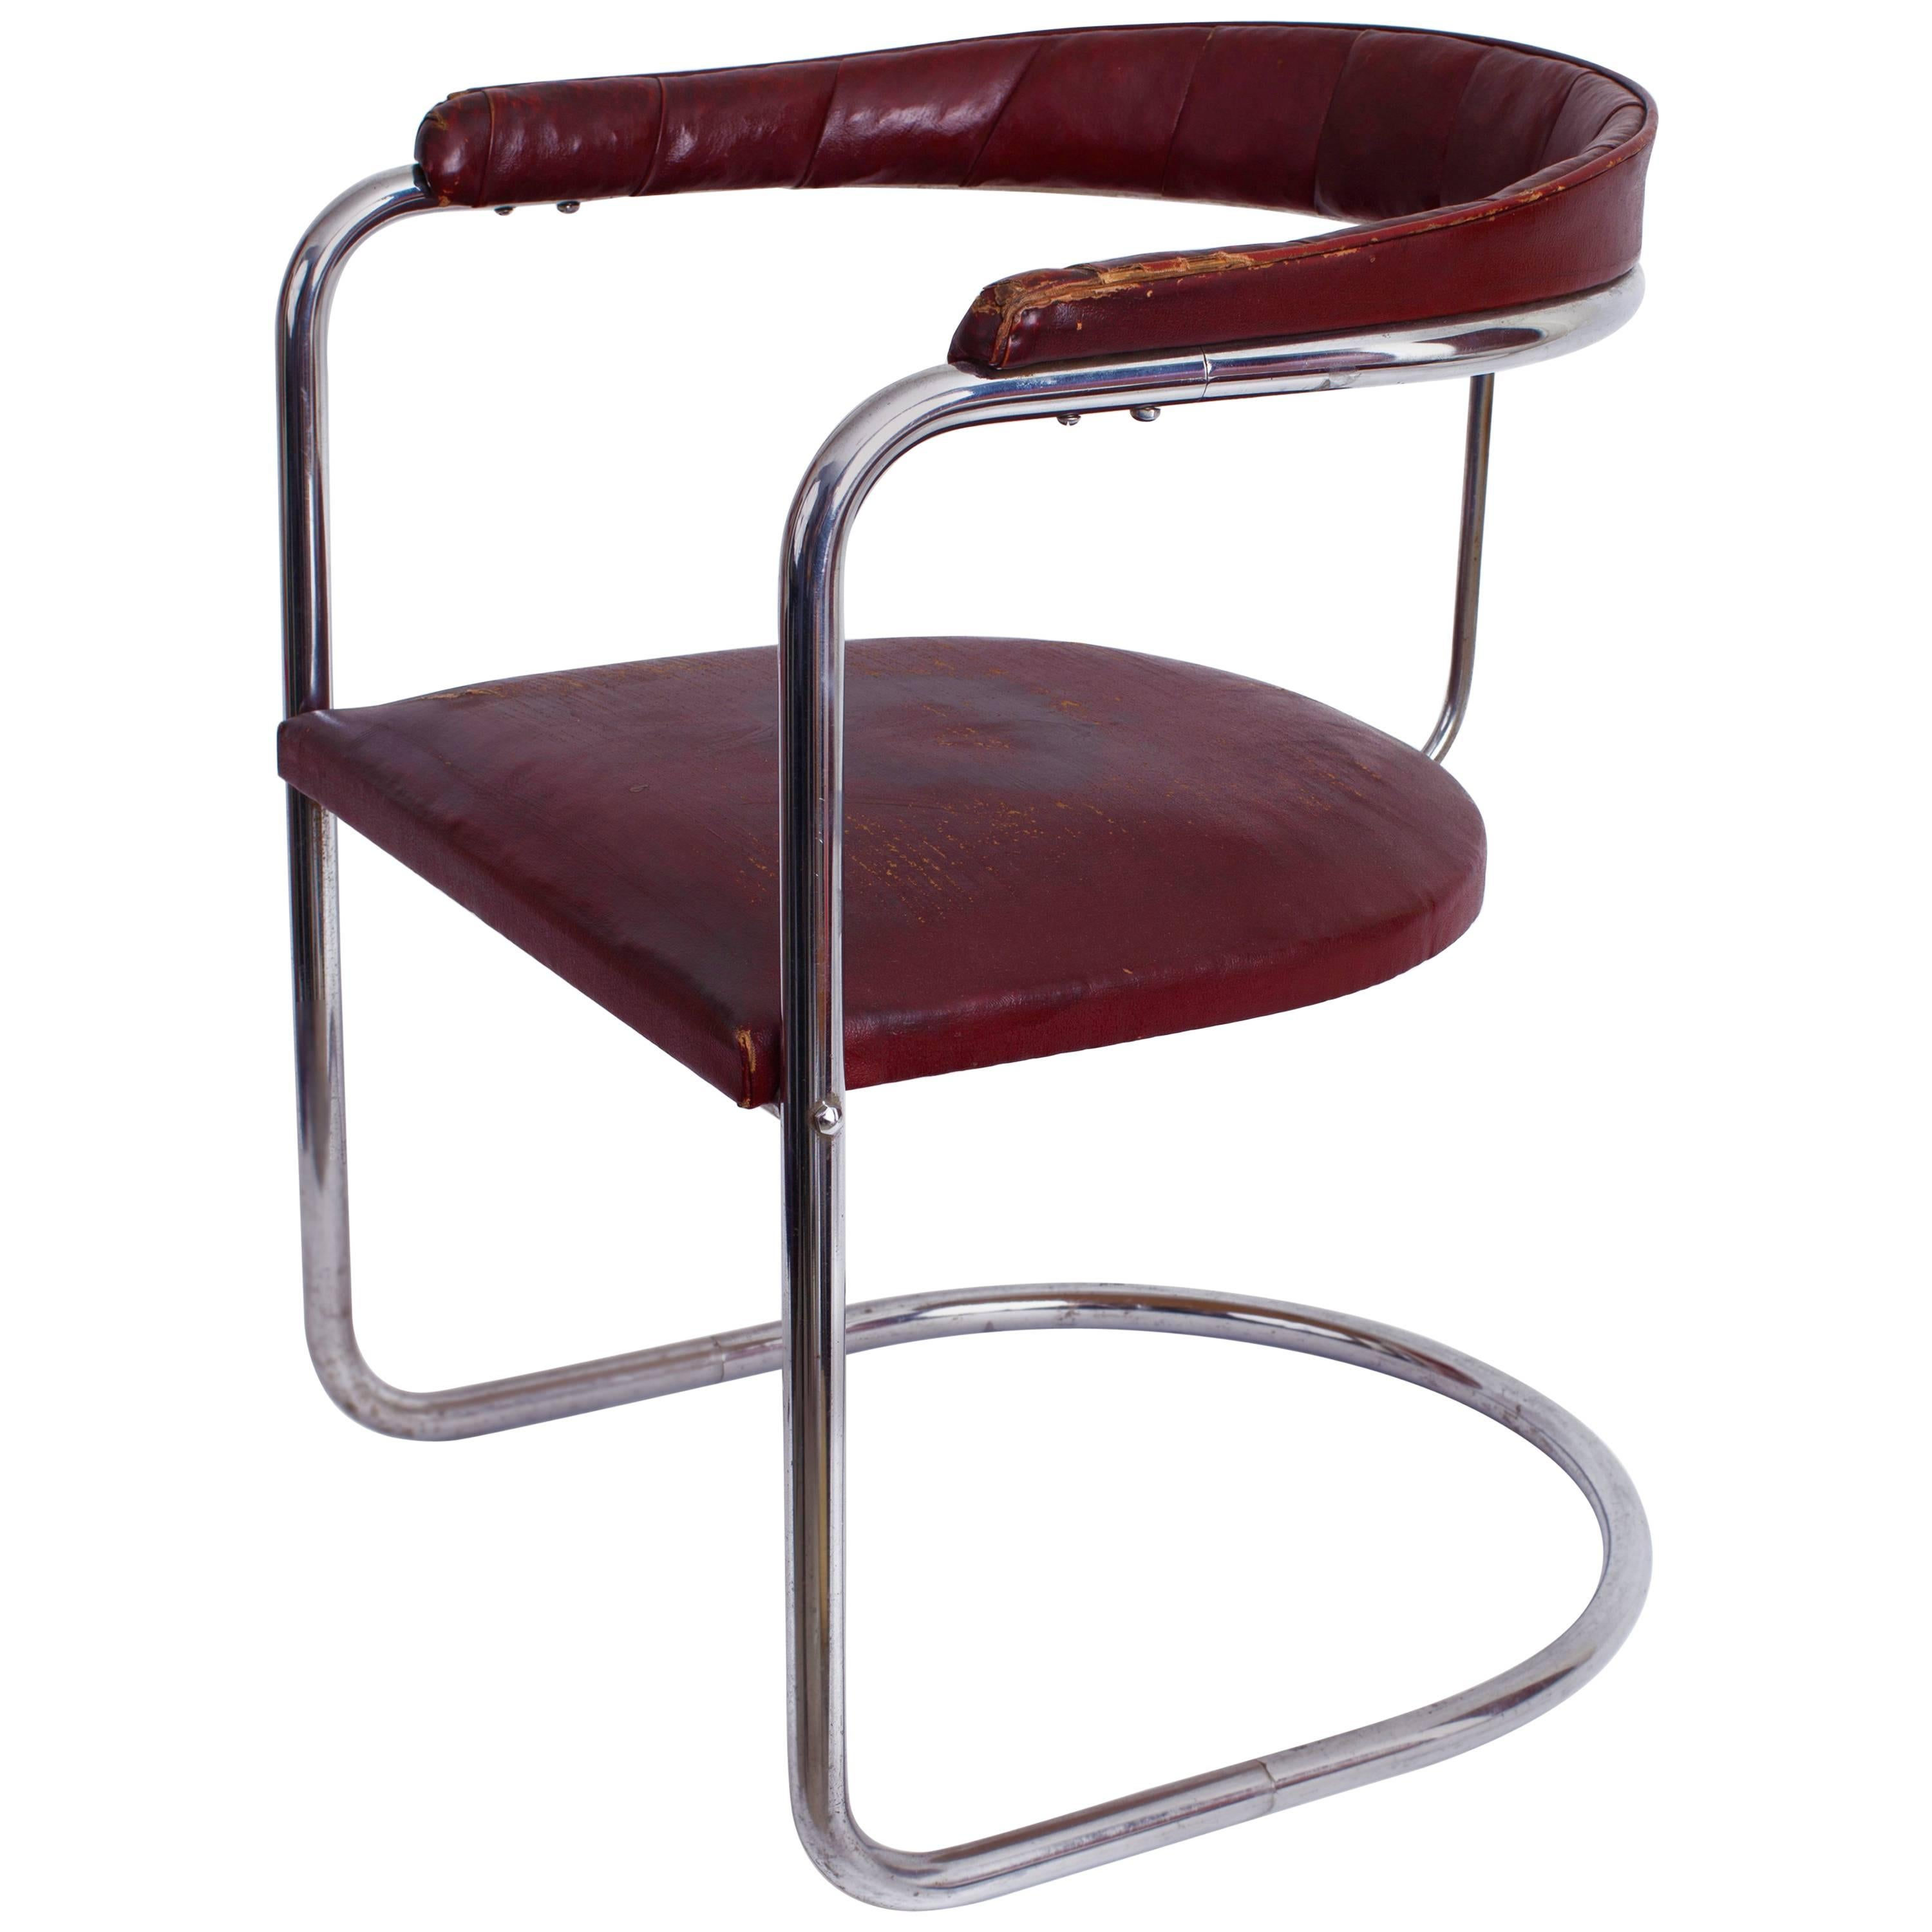 Exceptionnel Early Anton Lorenz For Thonet Cantilevered Steel Tube SS33 Chair, Germany  1930u0027s